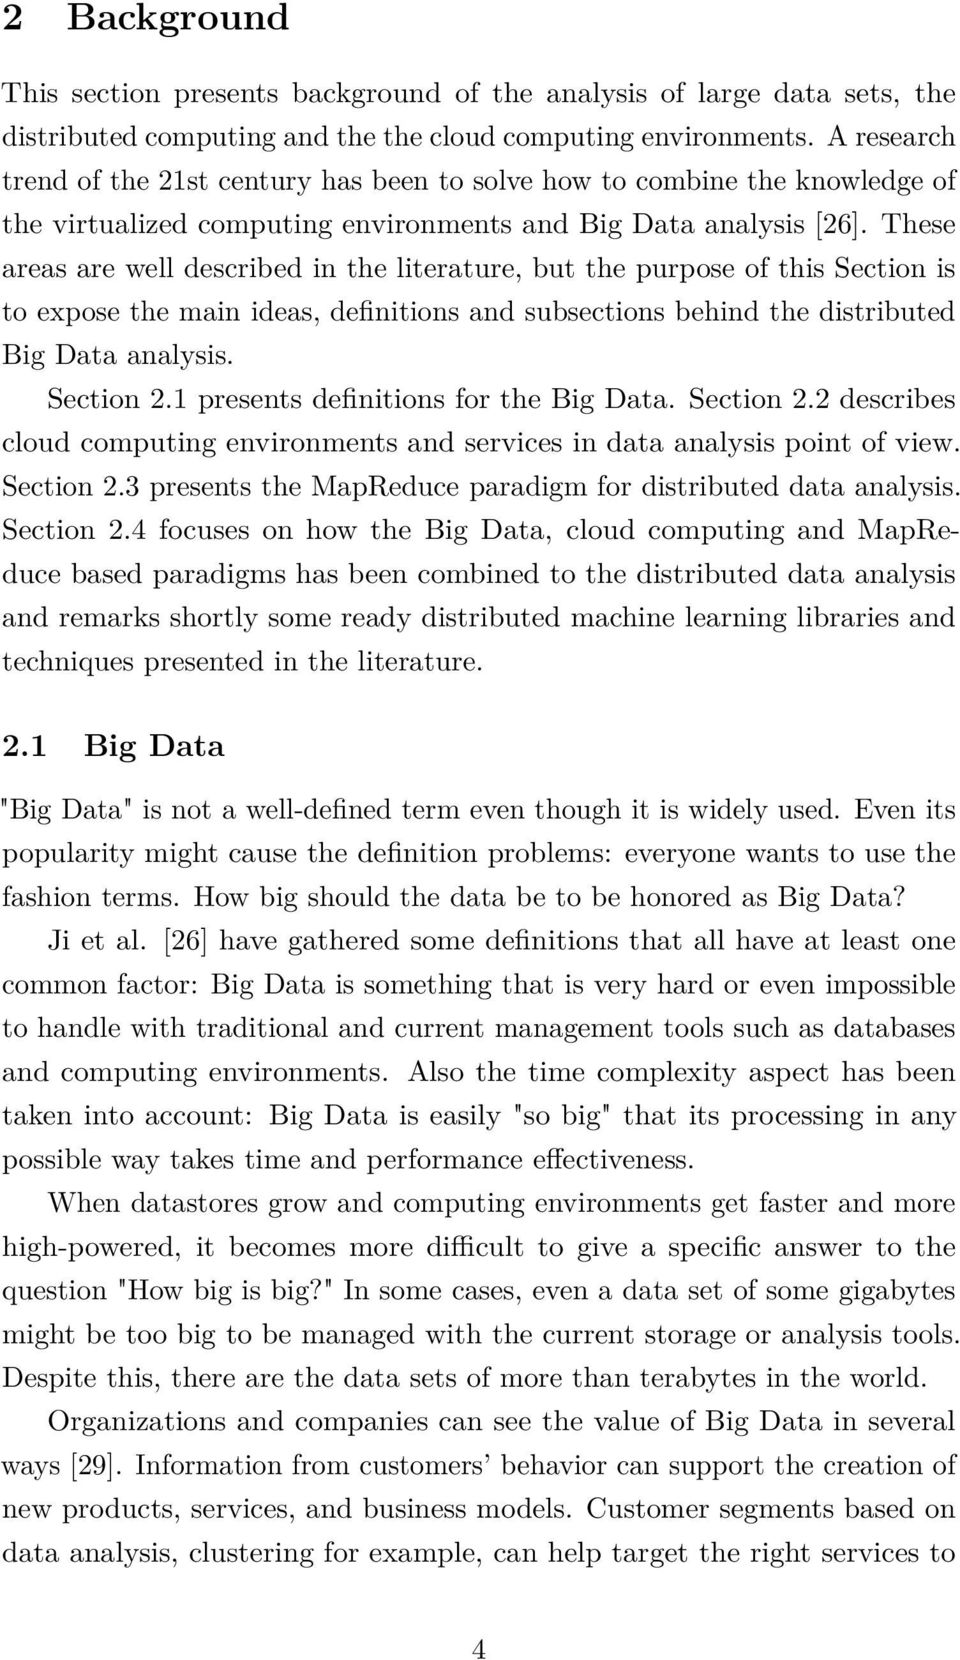 These areas are well described in the literature, but the purpose of this Section is to expose the main ideas, definitions and subsections behind the distributed Big Data analysis. Section 2.